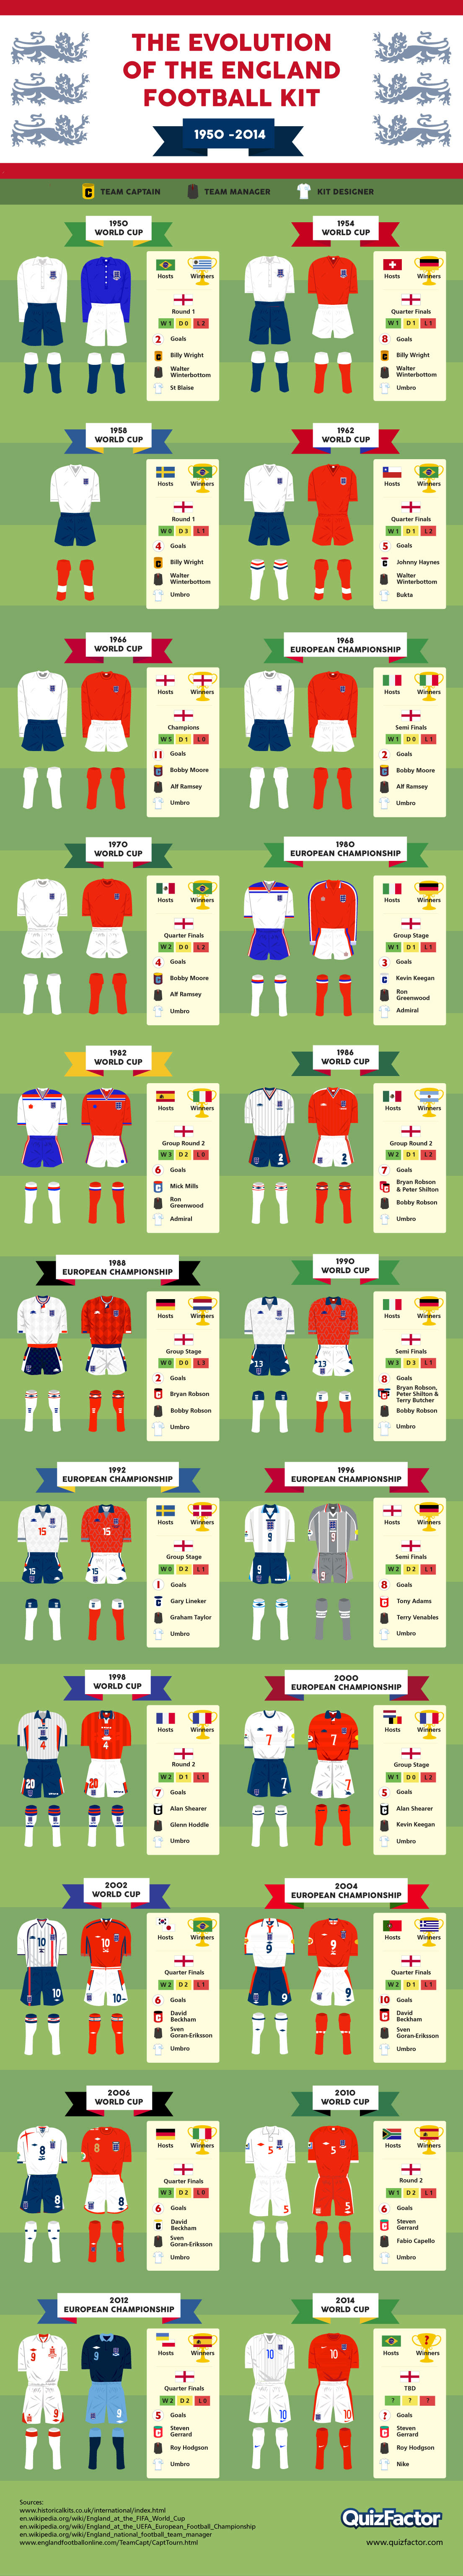 Infographic: The Evolution of the England Football Kit #infographic